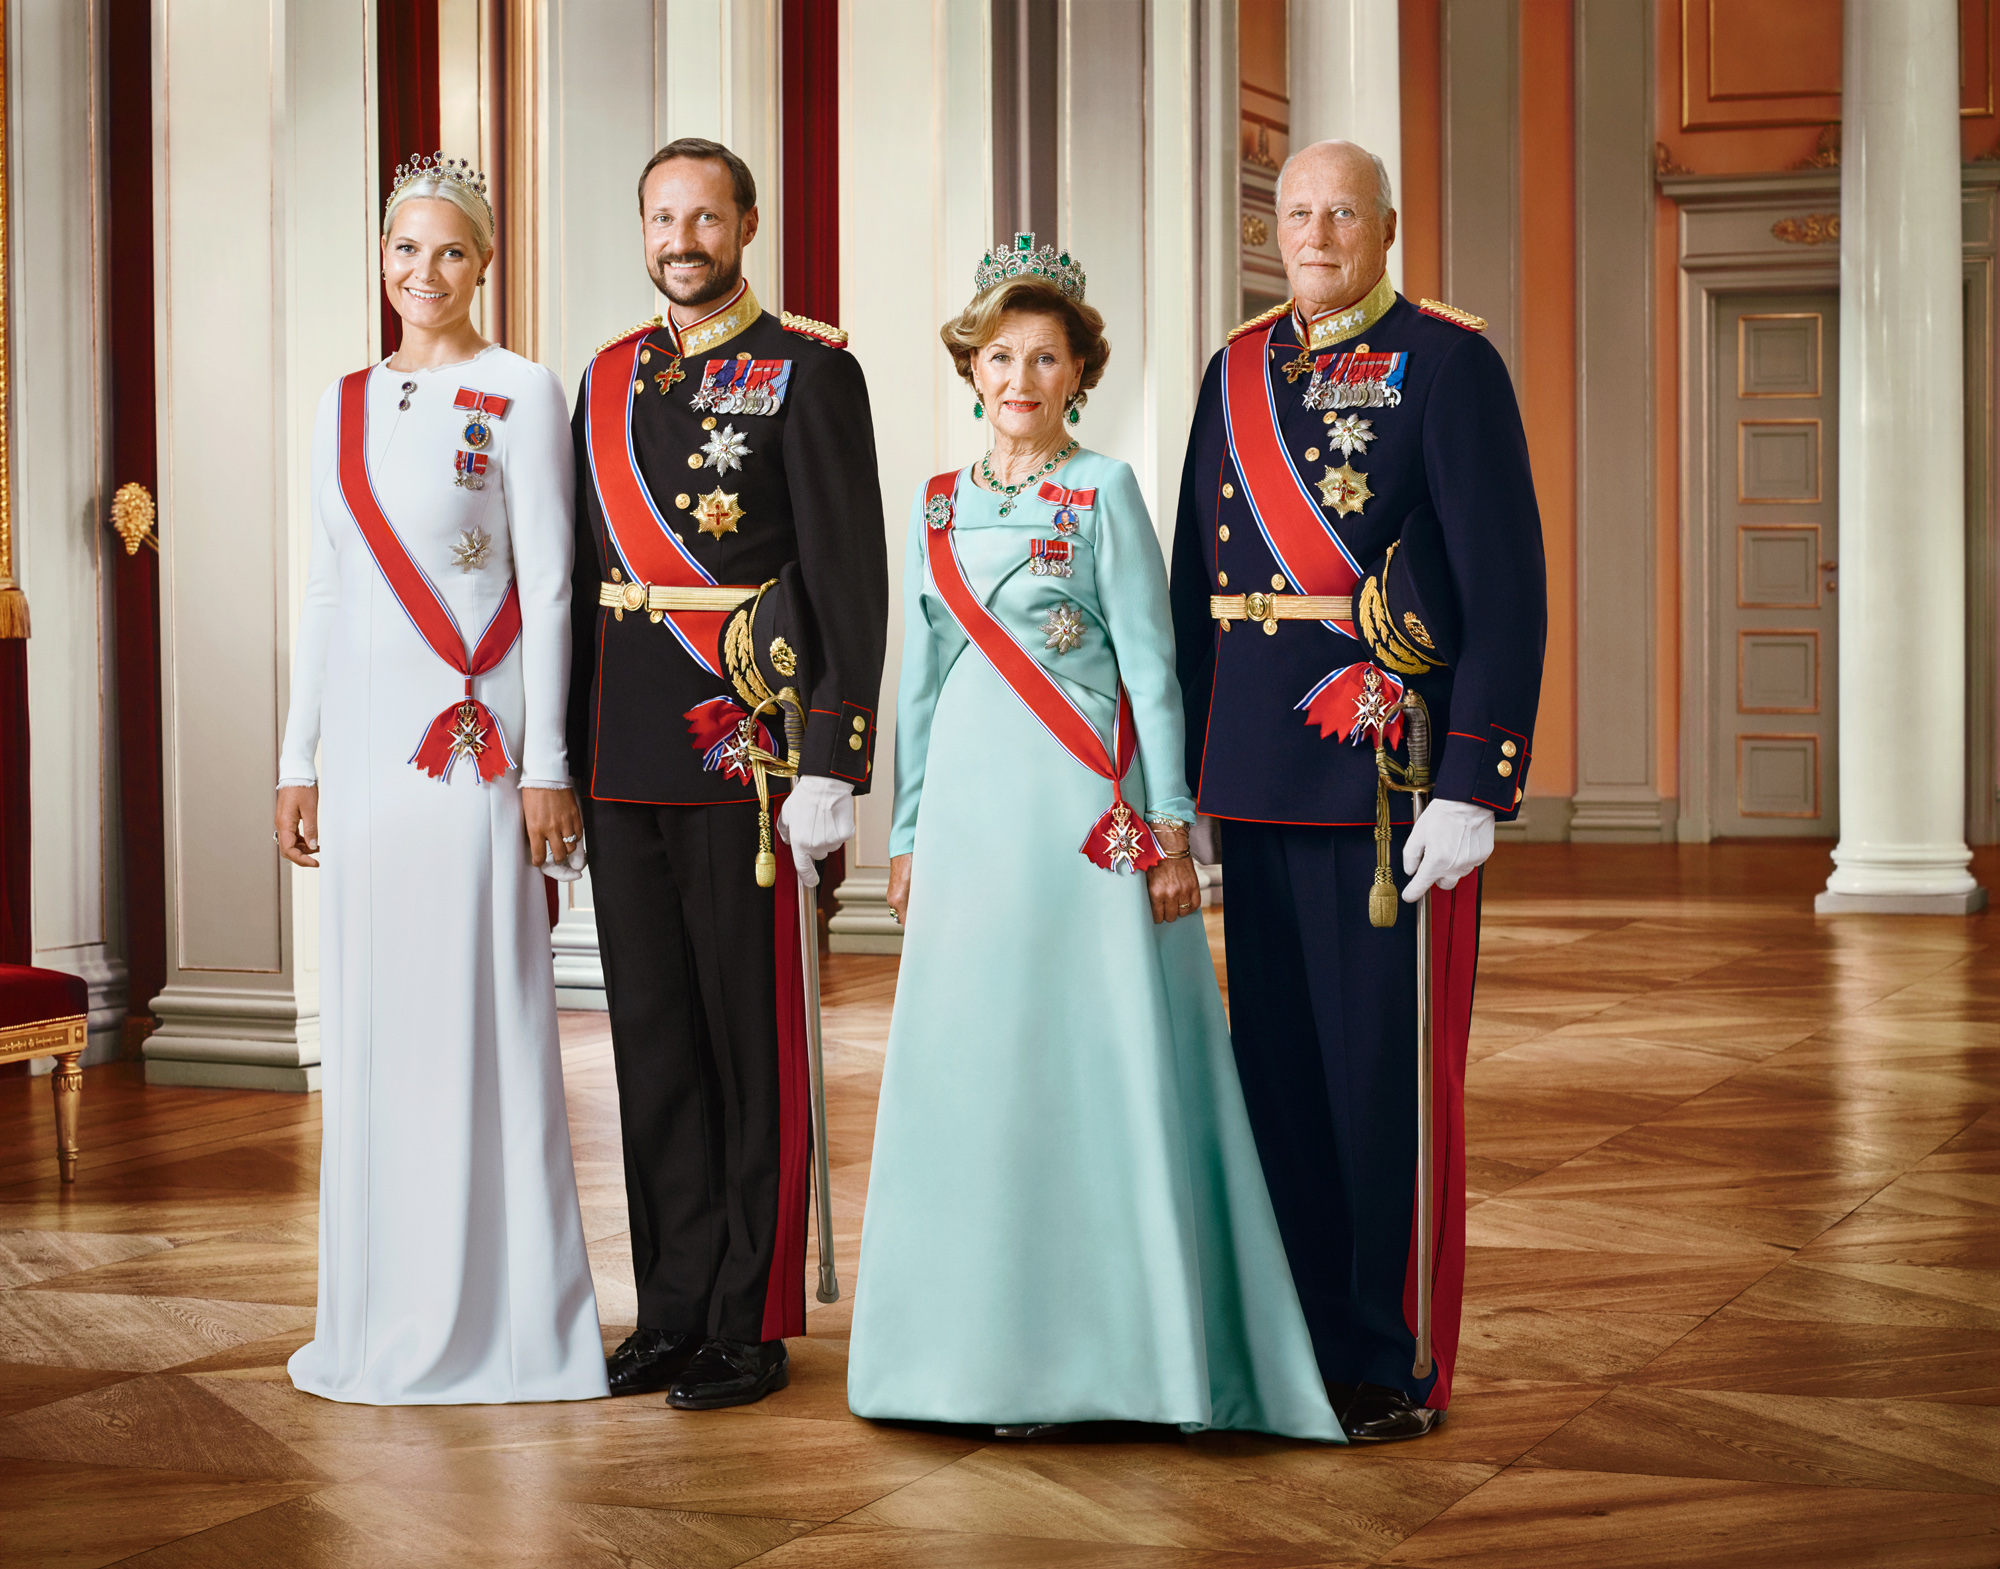 Their Majesties The King and Queen, Their Royal Highnesses The Crown Prince and Crown Princess